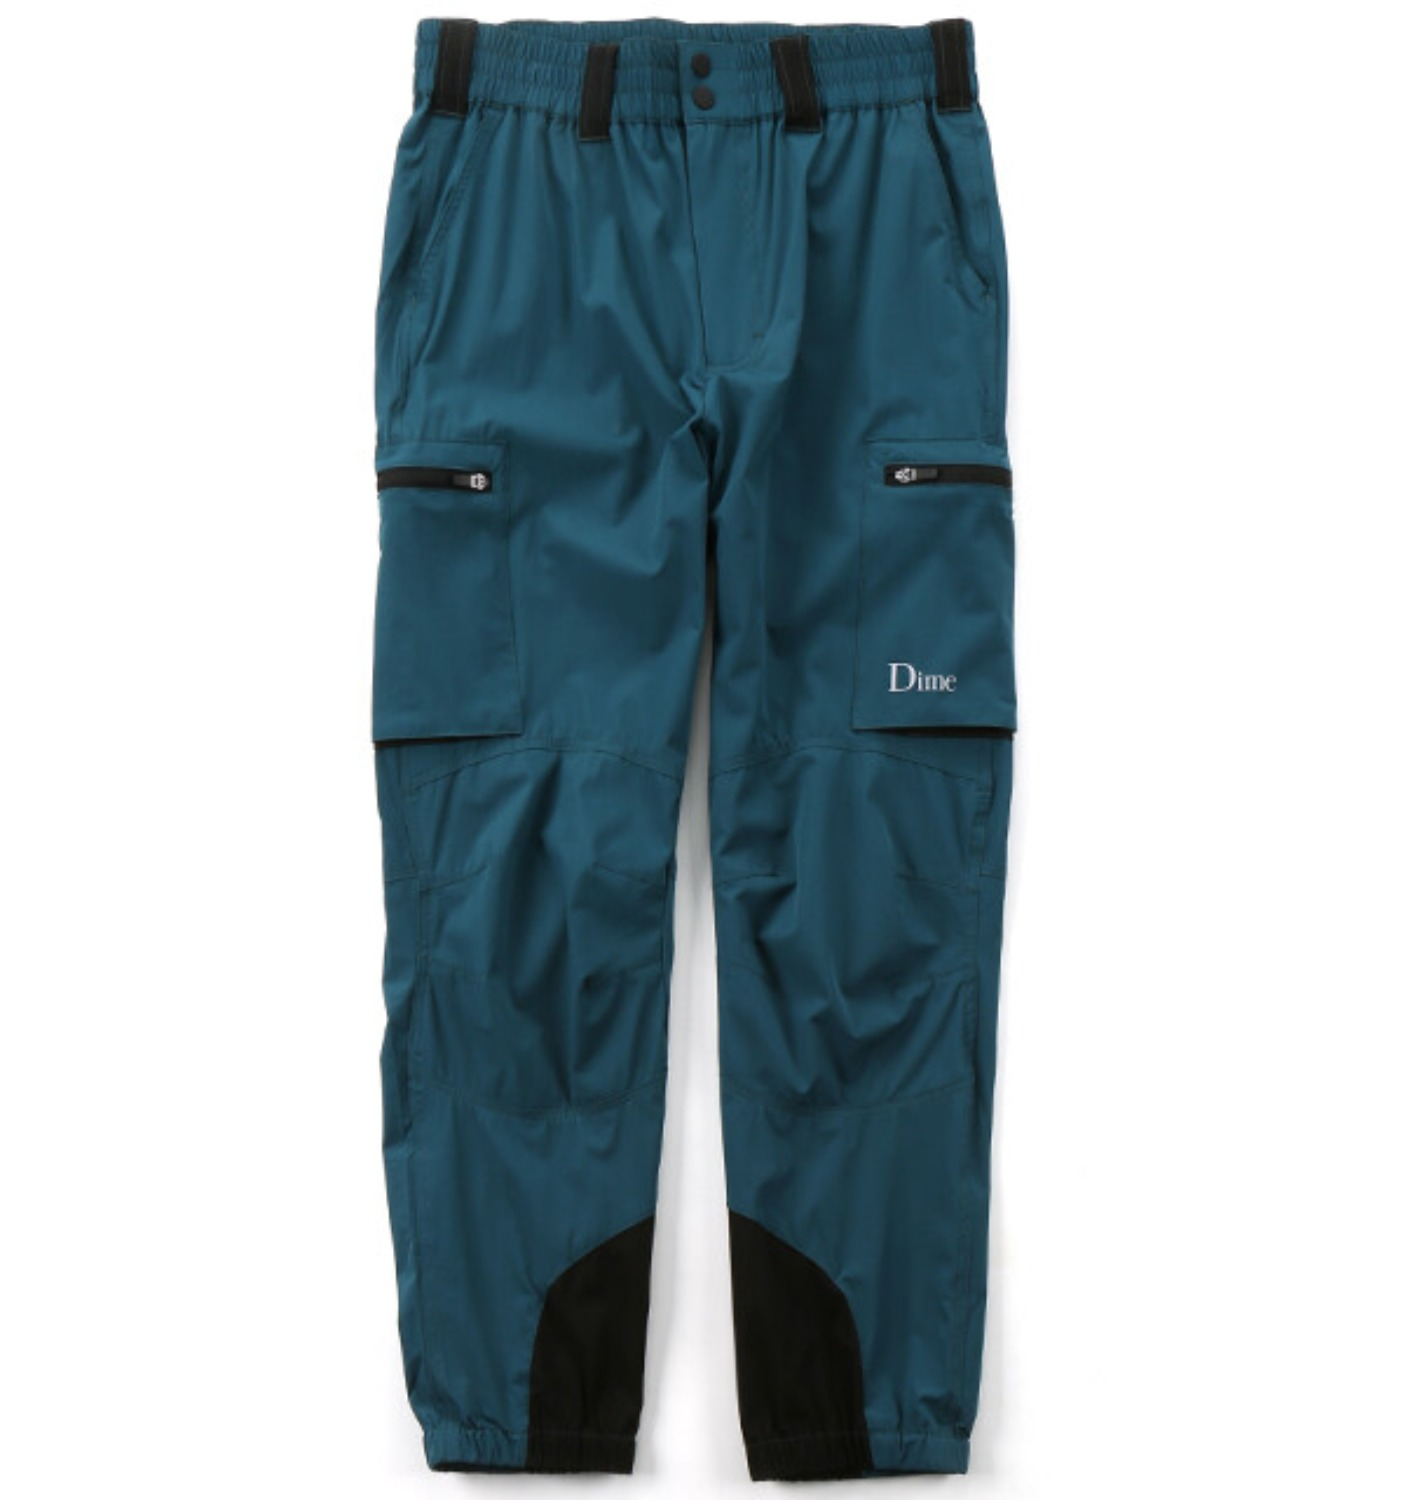 RANGE PANTS TEAL